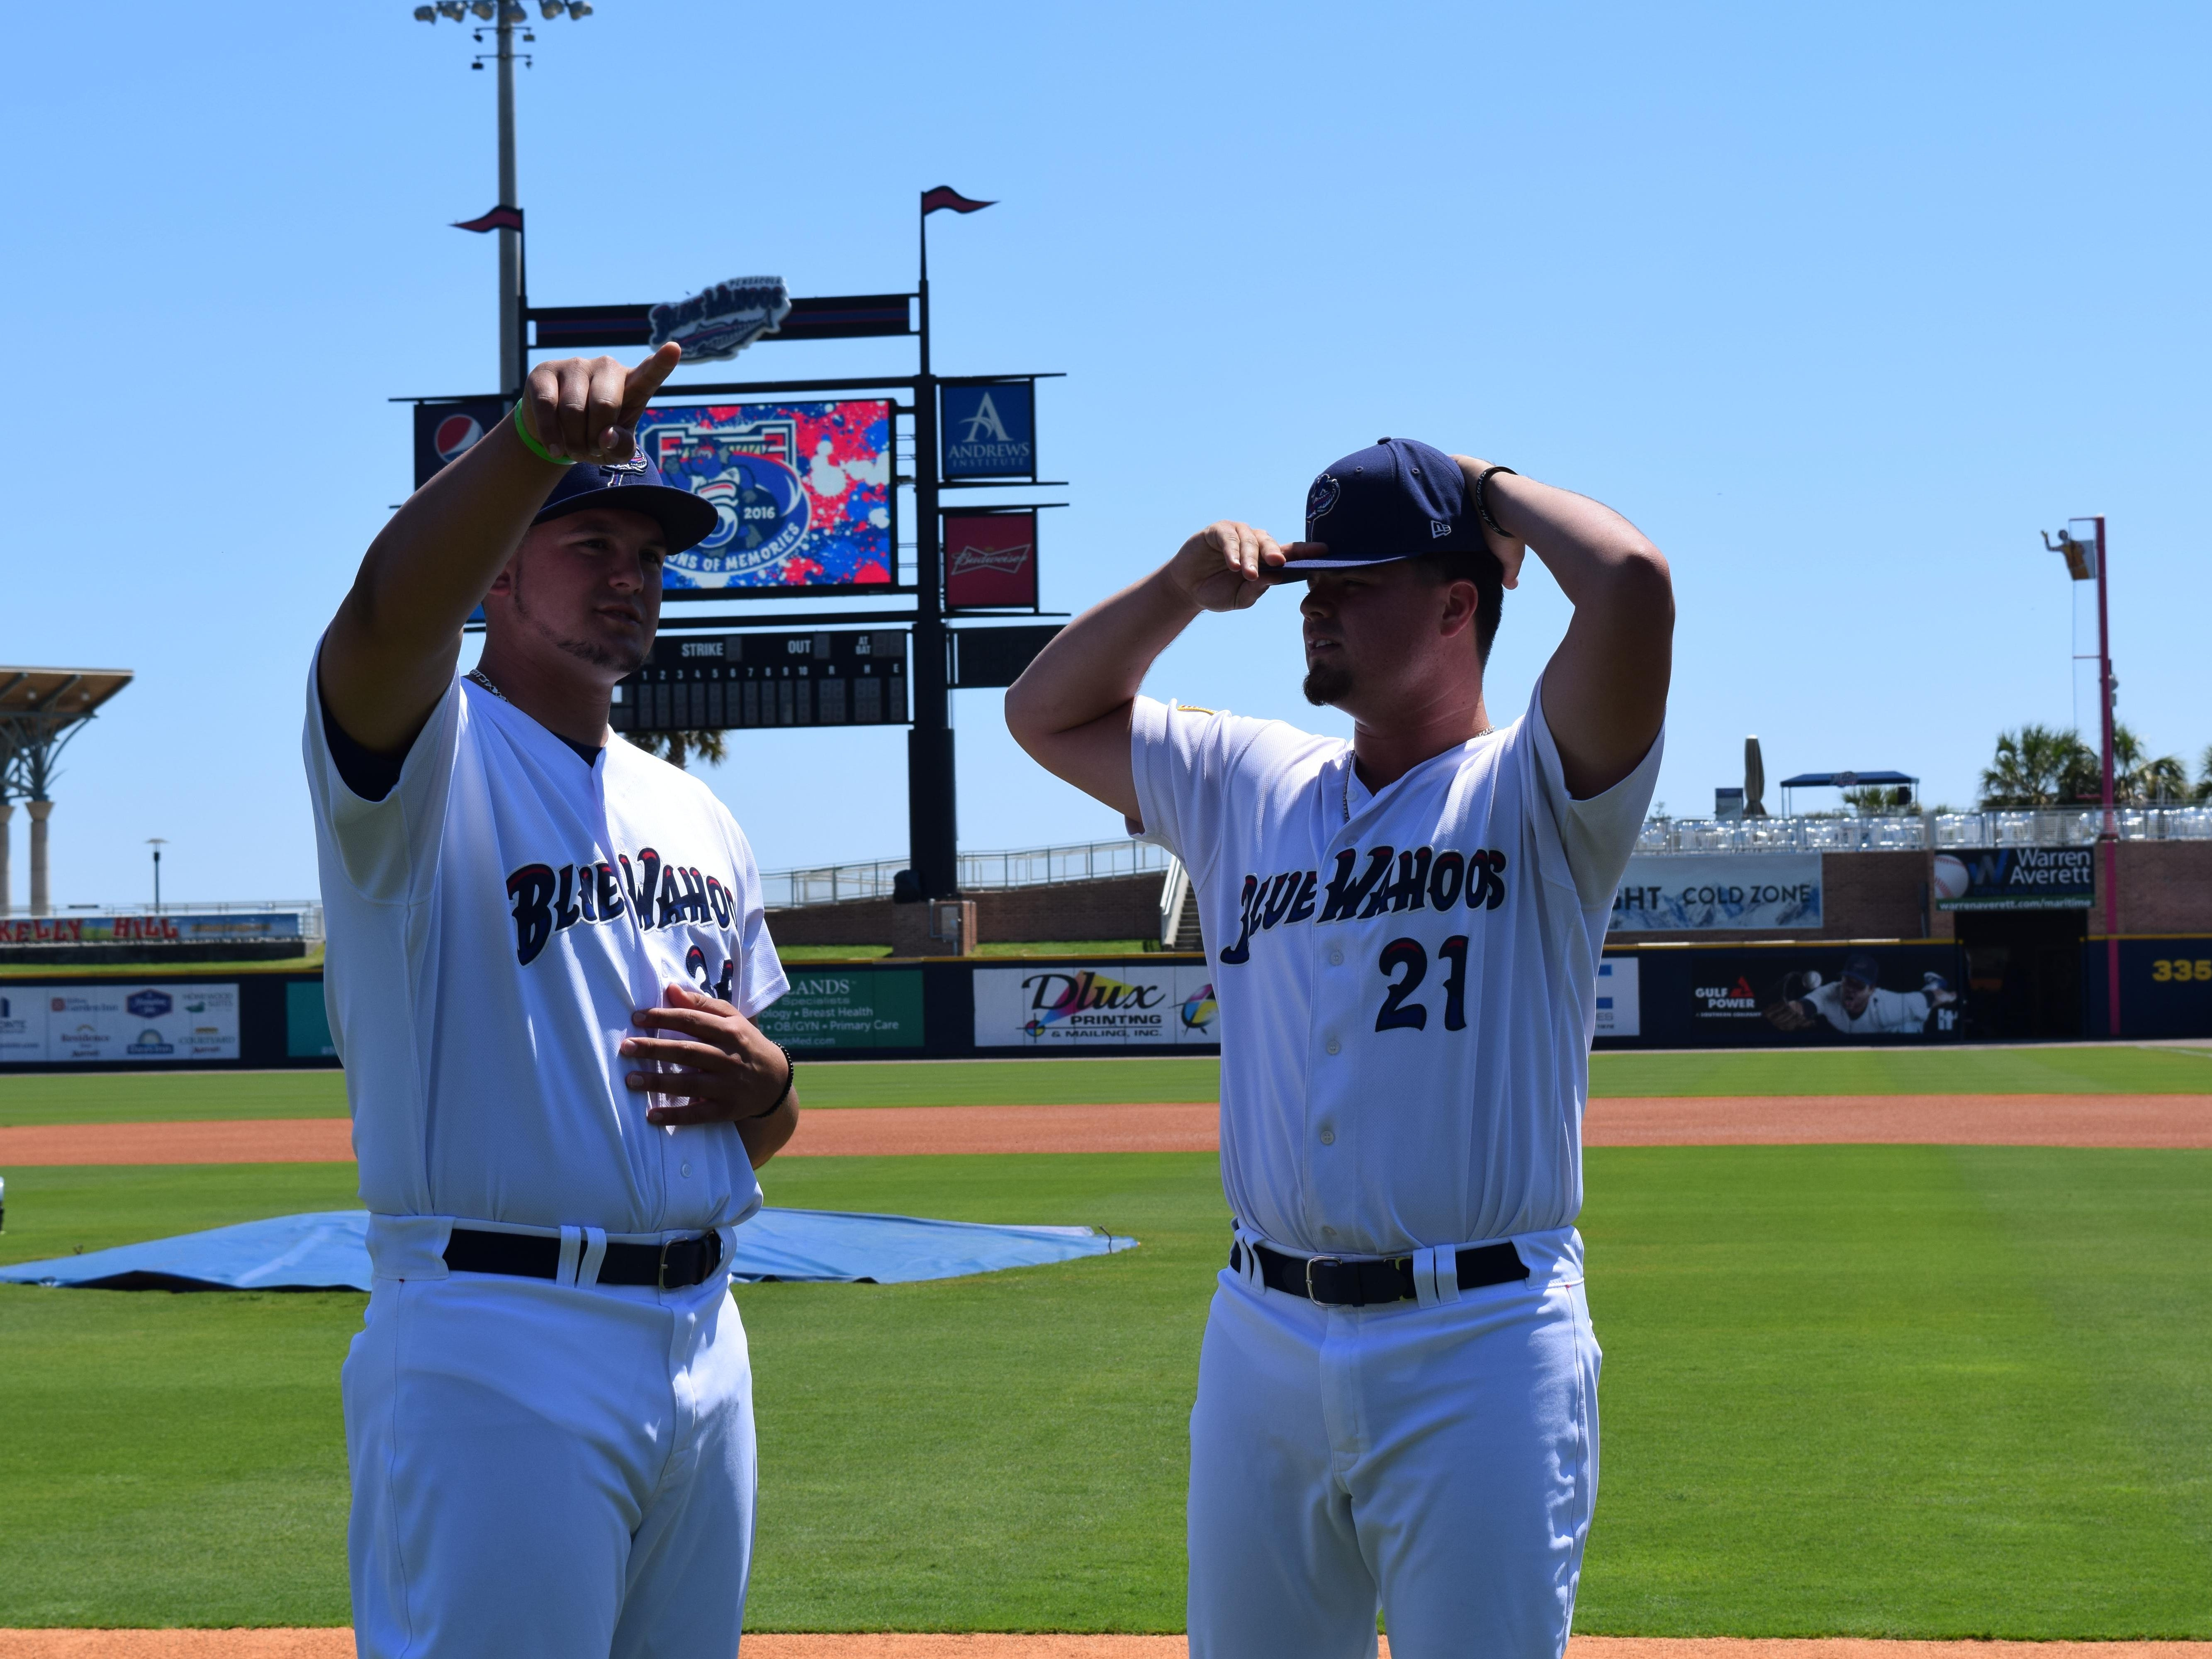 Blue Wahoos pitcher Nick Travieso, 21, named the opening day starter, chats with fellow pitcher Nick Routt prior to Tuesday's practice. Travieso pitched against Pace High in the 2012 Class 6A state championship.